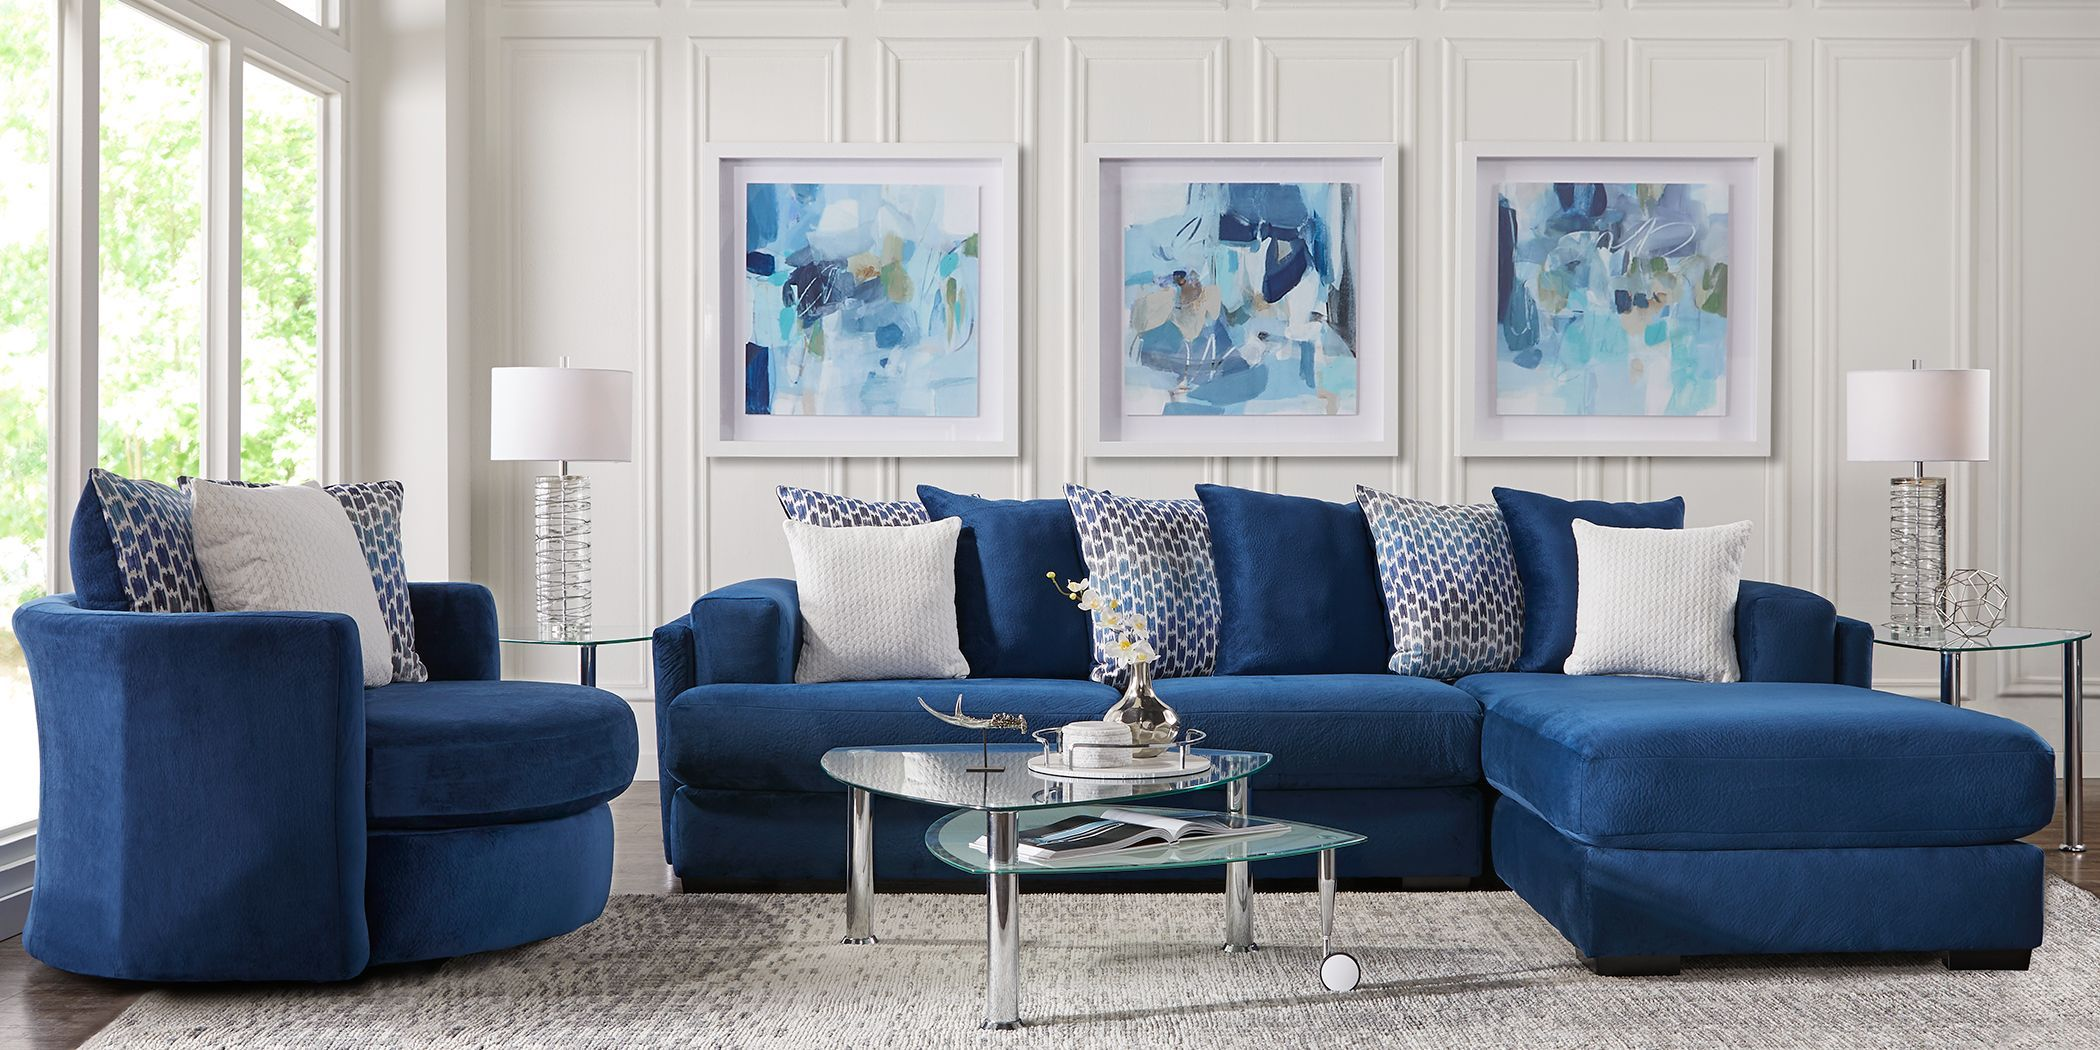 Park Trace Navy 2 Pc Sectional Rooms To Go Living Room Sets Furniture Furniture Living Room Sectional